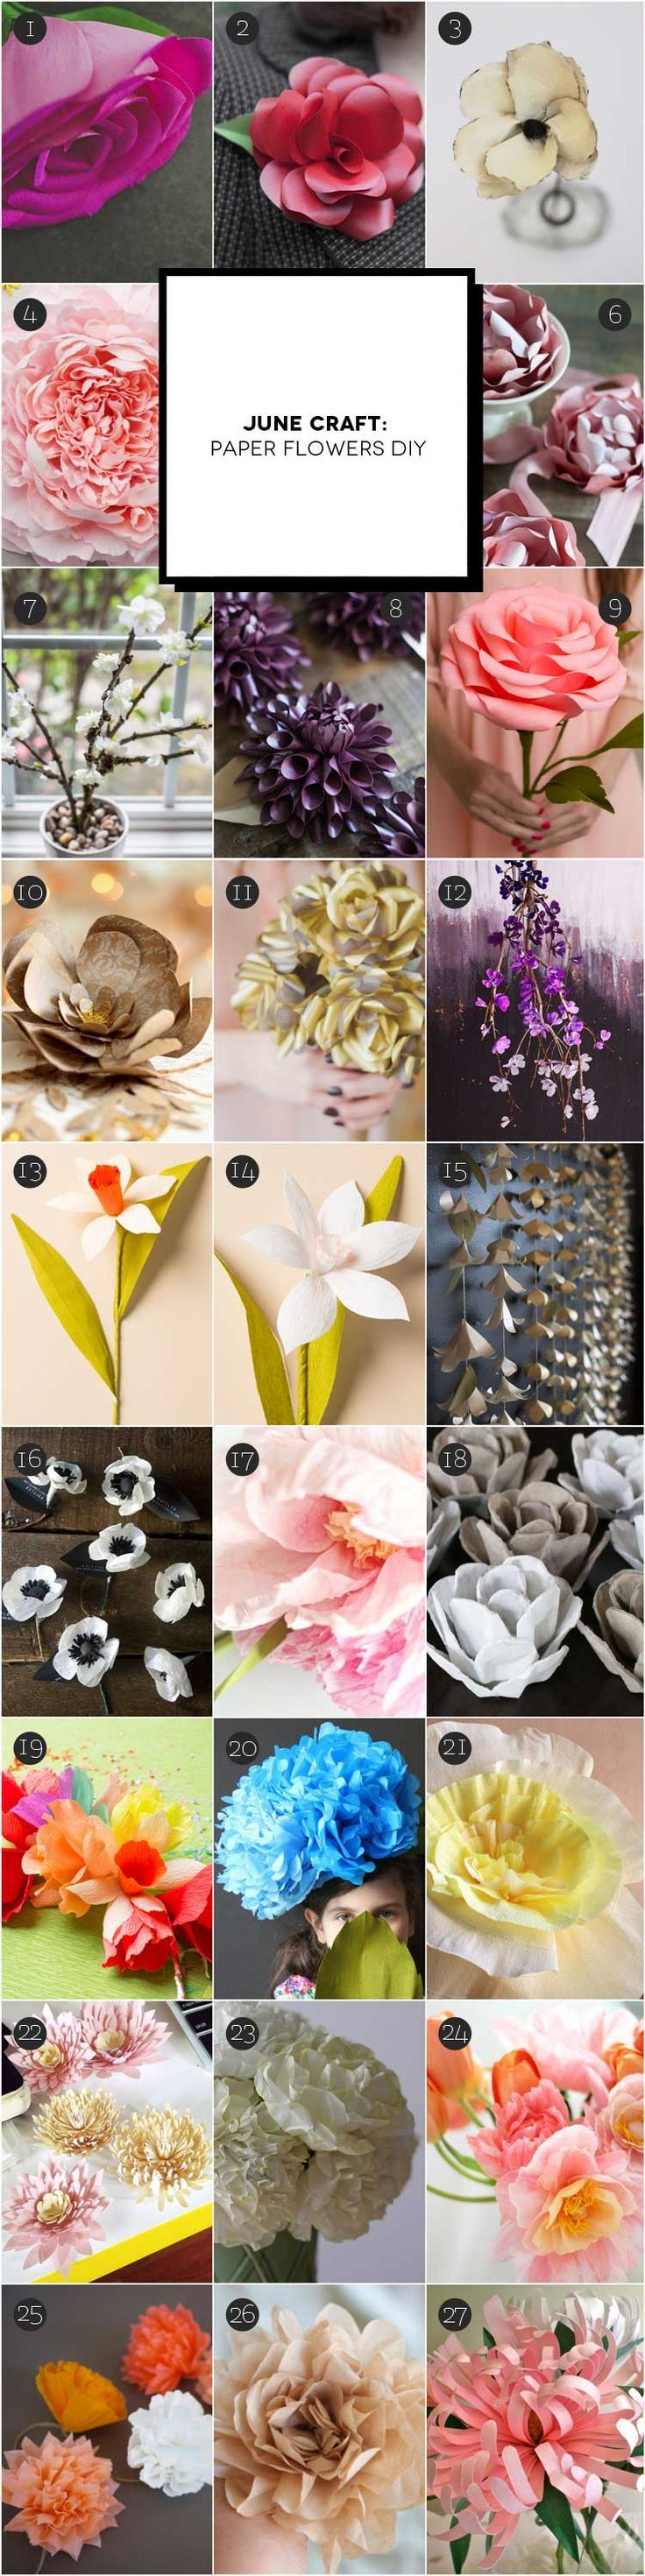 June Craft: realizzare fiori di carta | Inspire We Trust #diy #paperflowers #craft